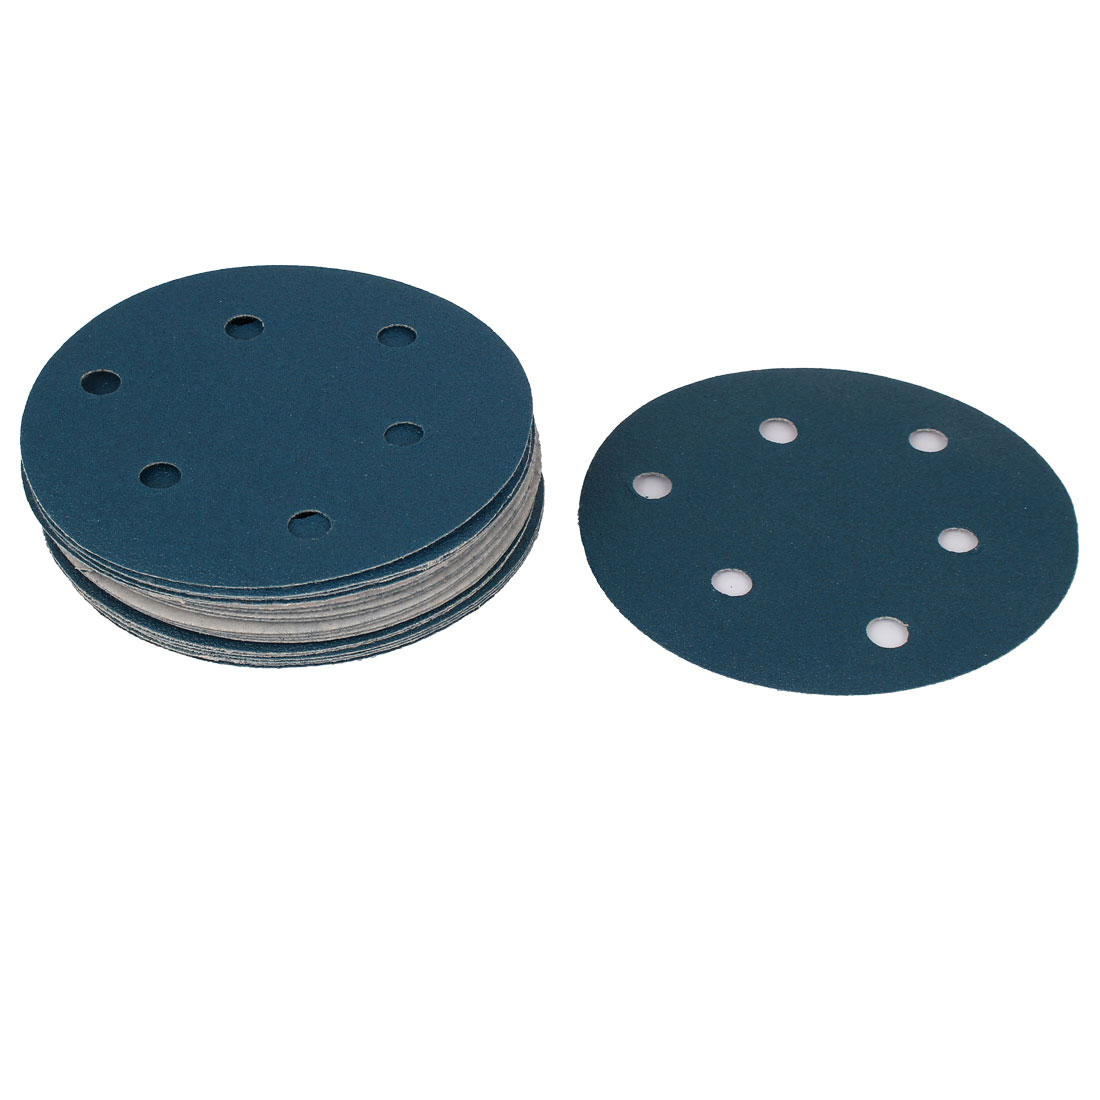 "5"" Sandpaper Auto Car Paint Polishing Sanding Disc Hook and Loop Fastener 6 Holes 100 Grit 20pcs"